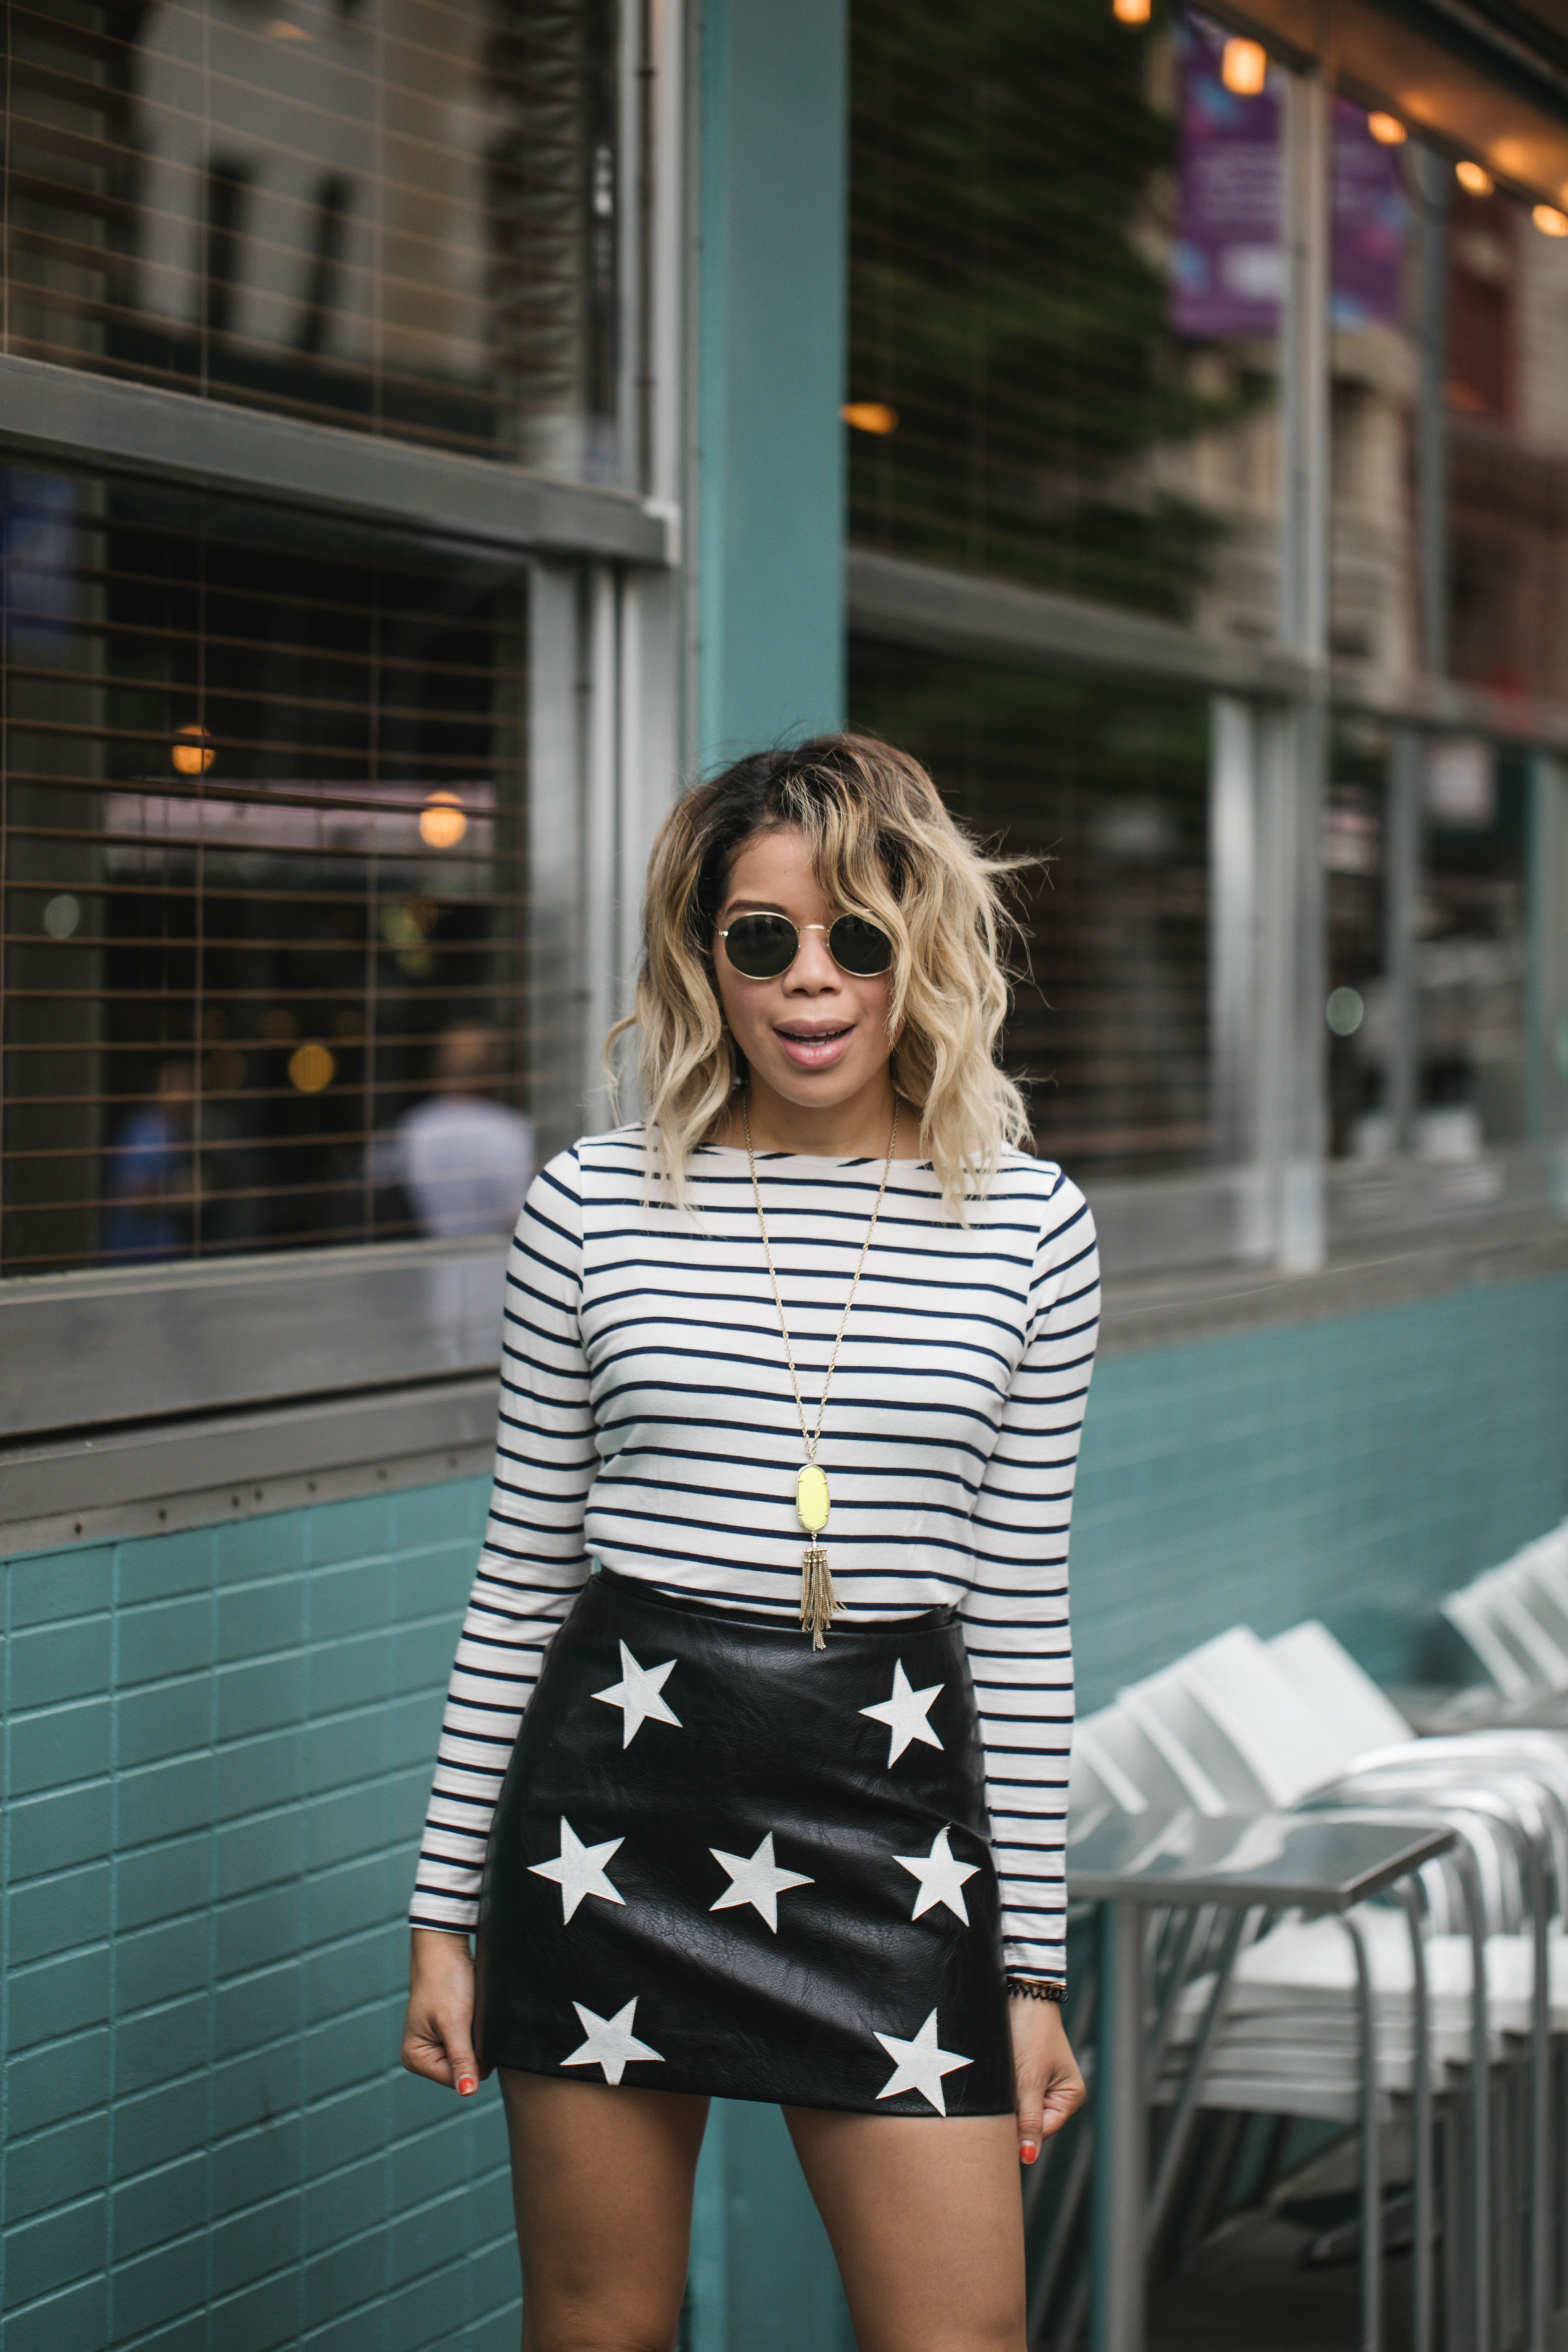 aileen olmedo new york city lifestyle blogger on fall hair style trends